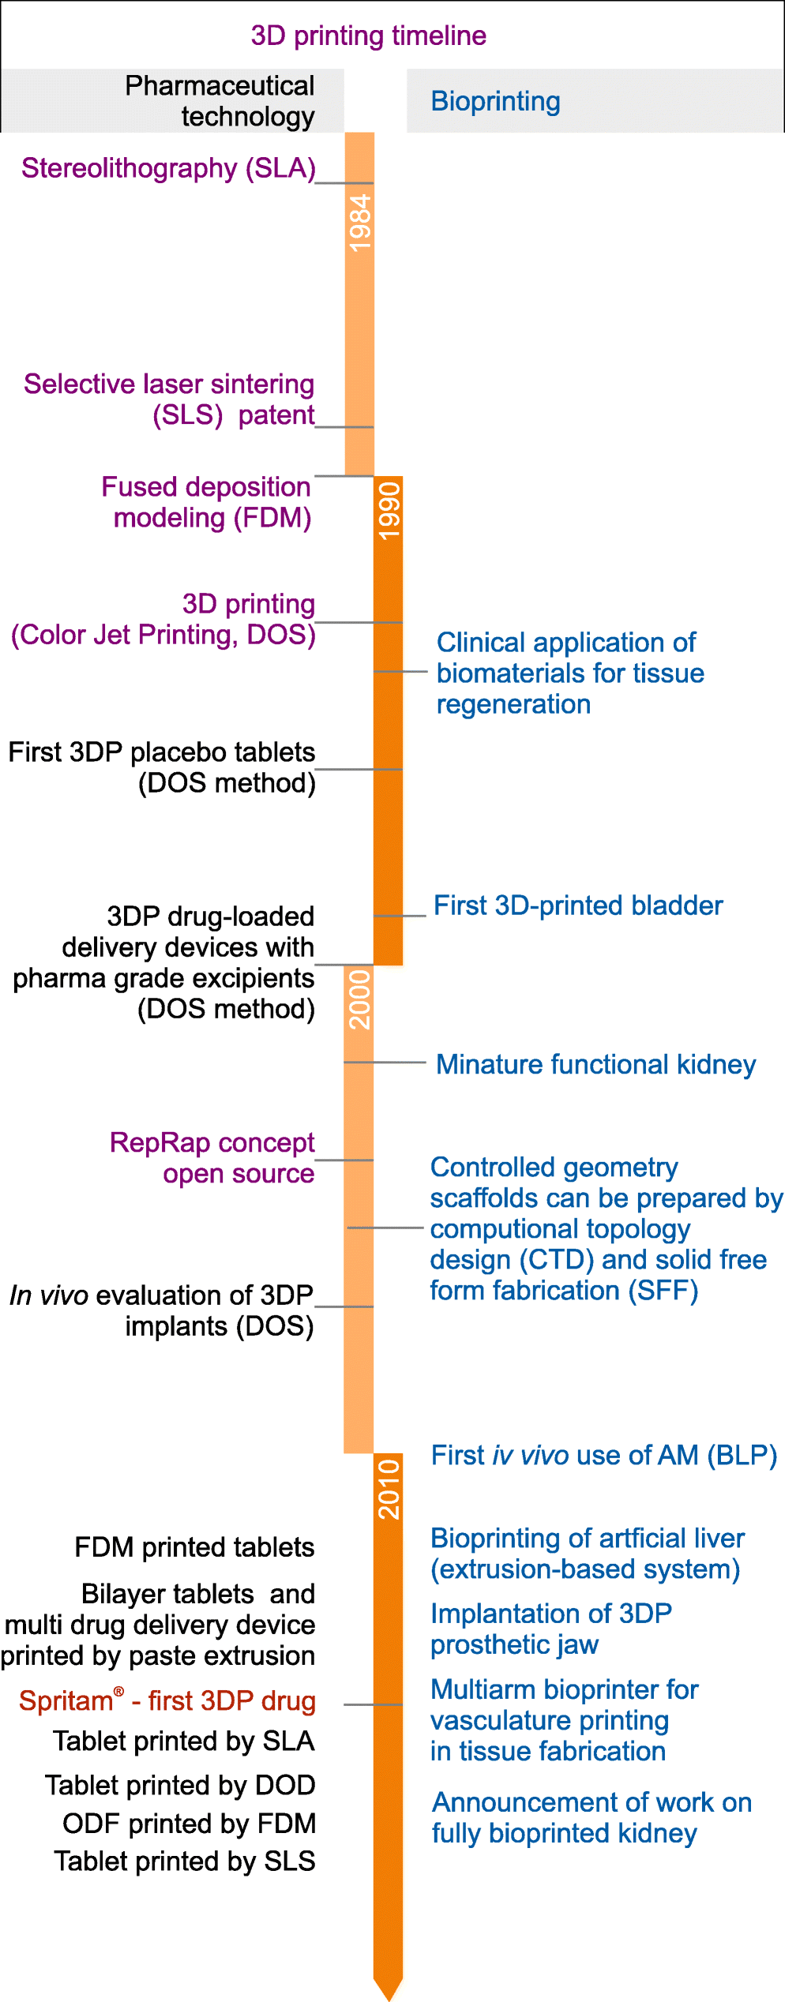 Figure 1 - The most important achievements in 3D printing in pharmaceutical and biomedical applications